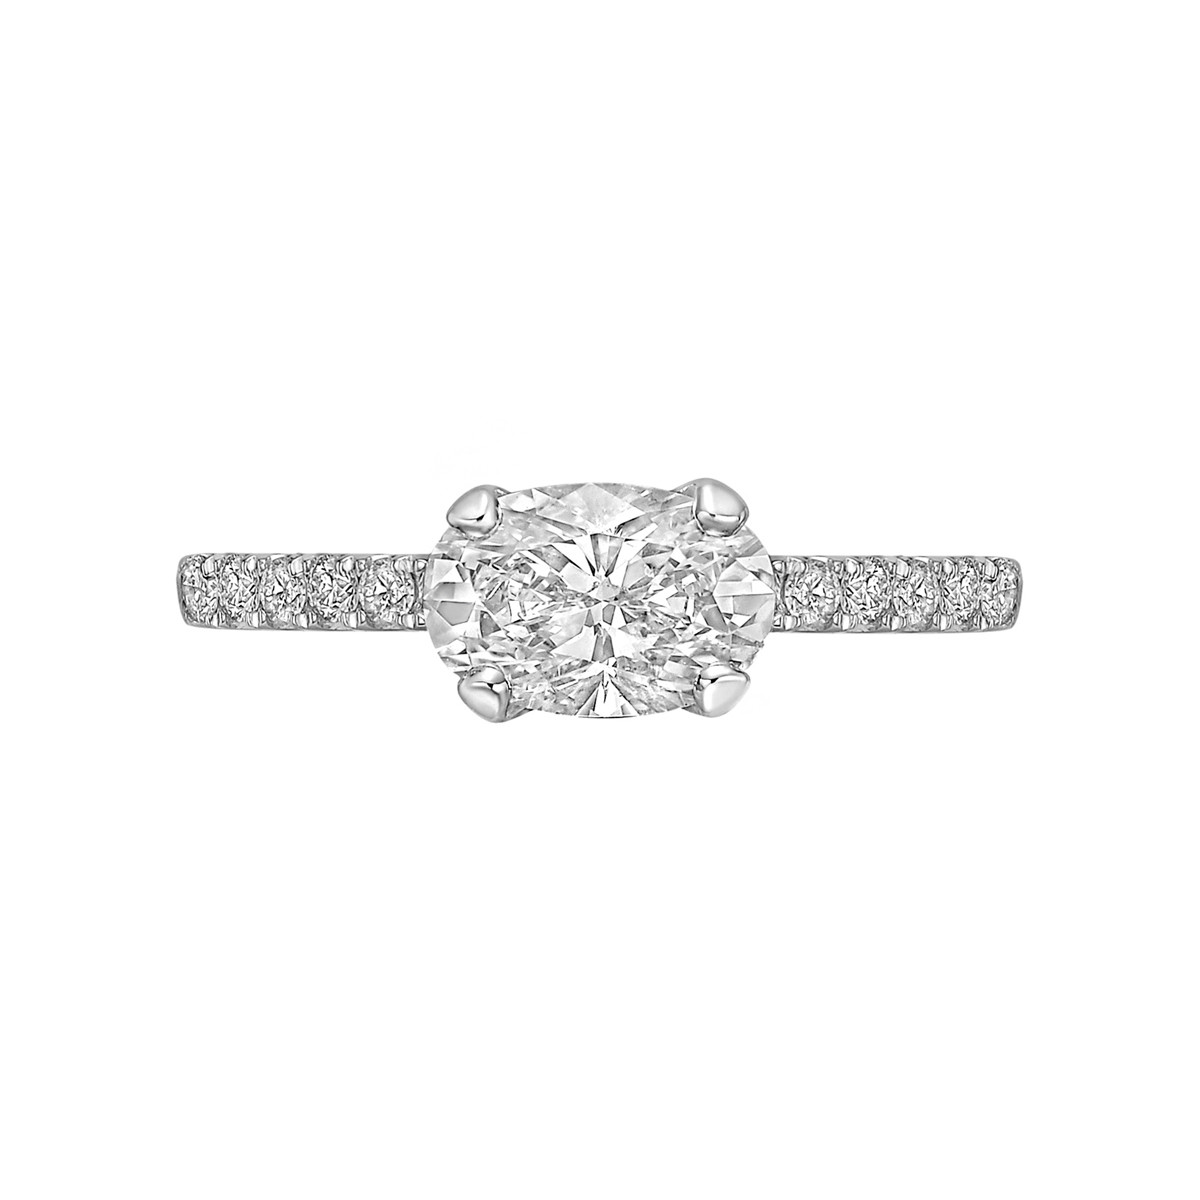 1.01ct Oval Brilliant-Cut Diamond Ring